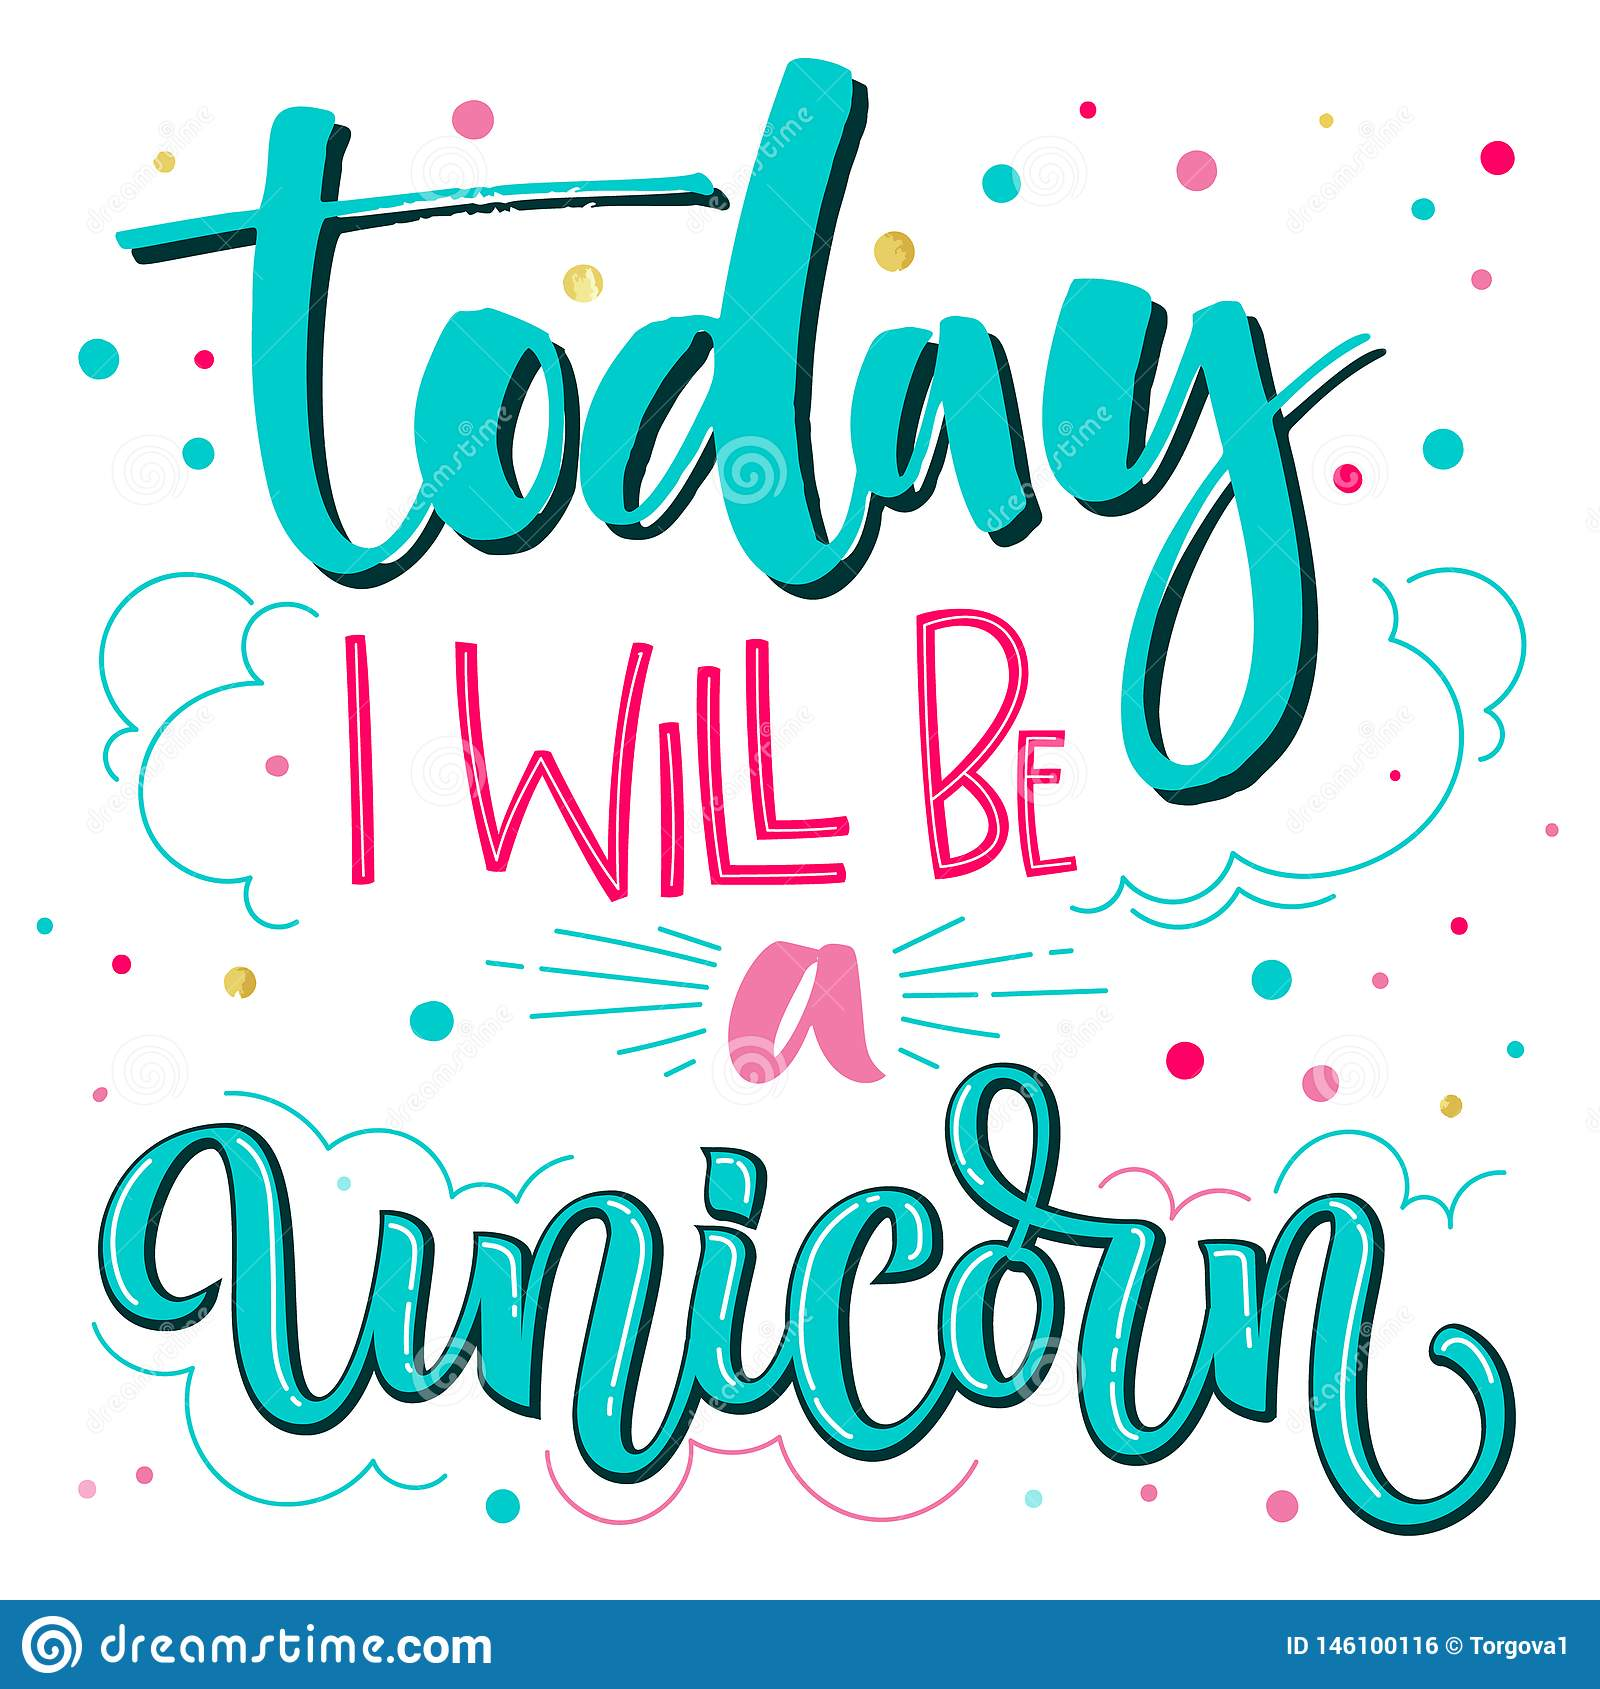 - Today I Will Be A Unicorn Hand Drawn Isolated Colorful Lettering